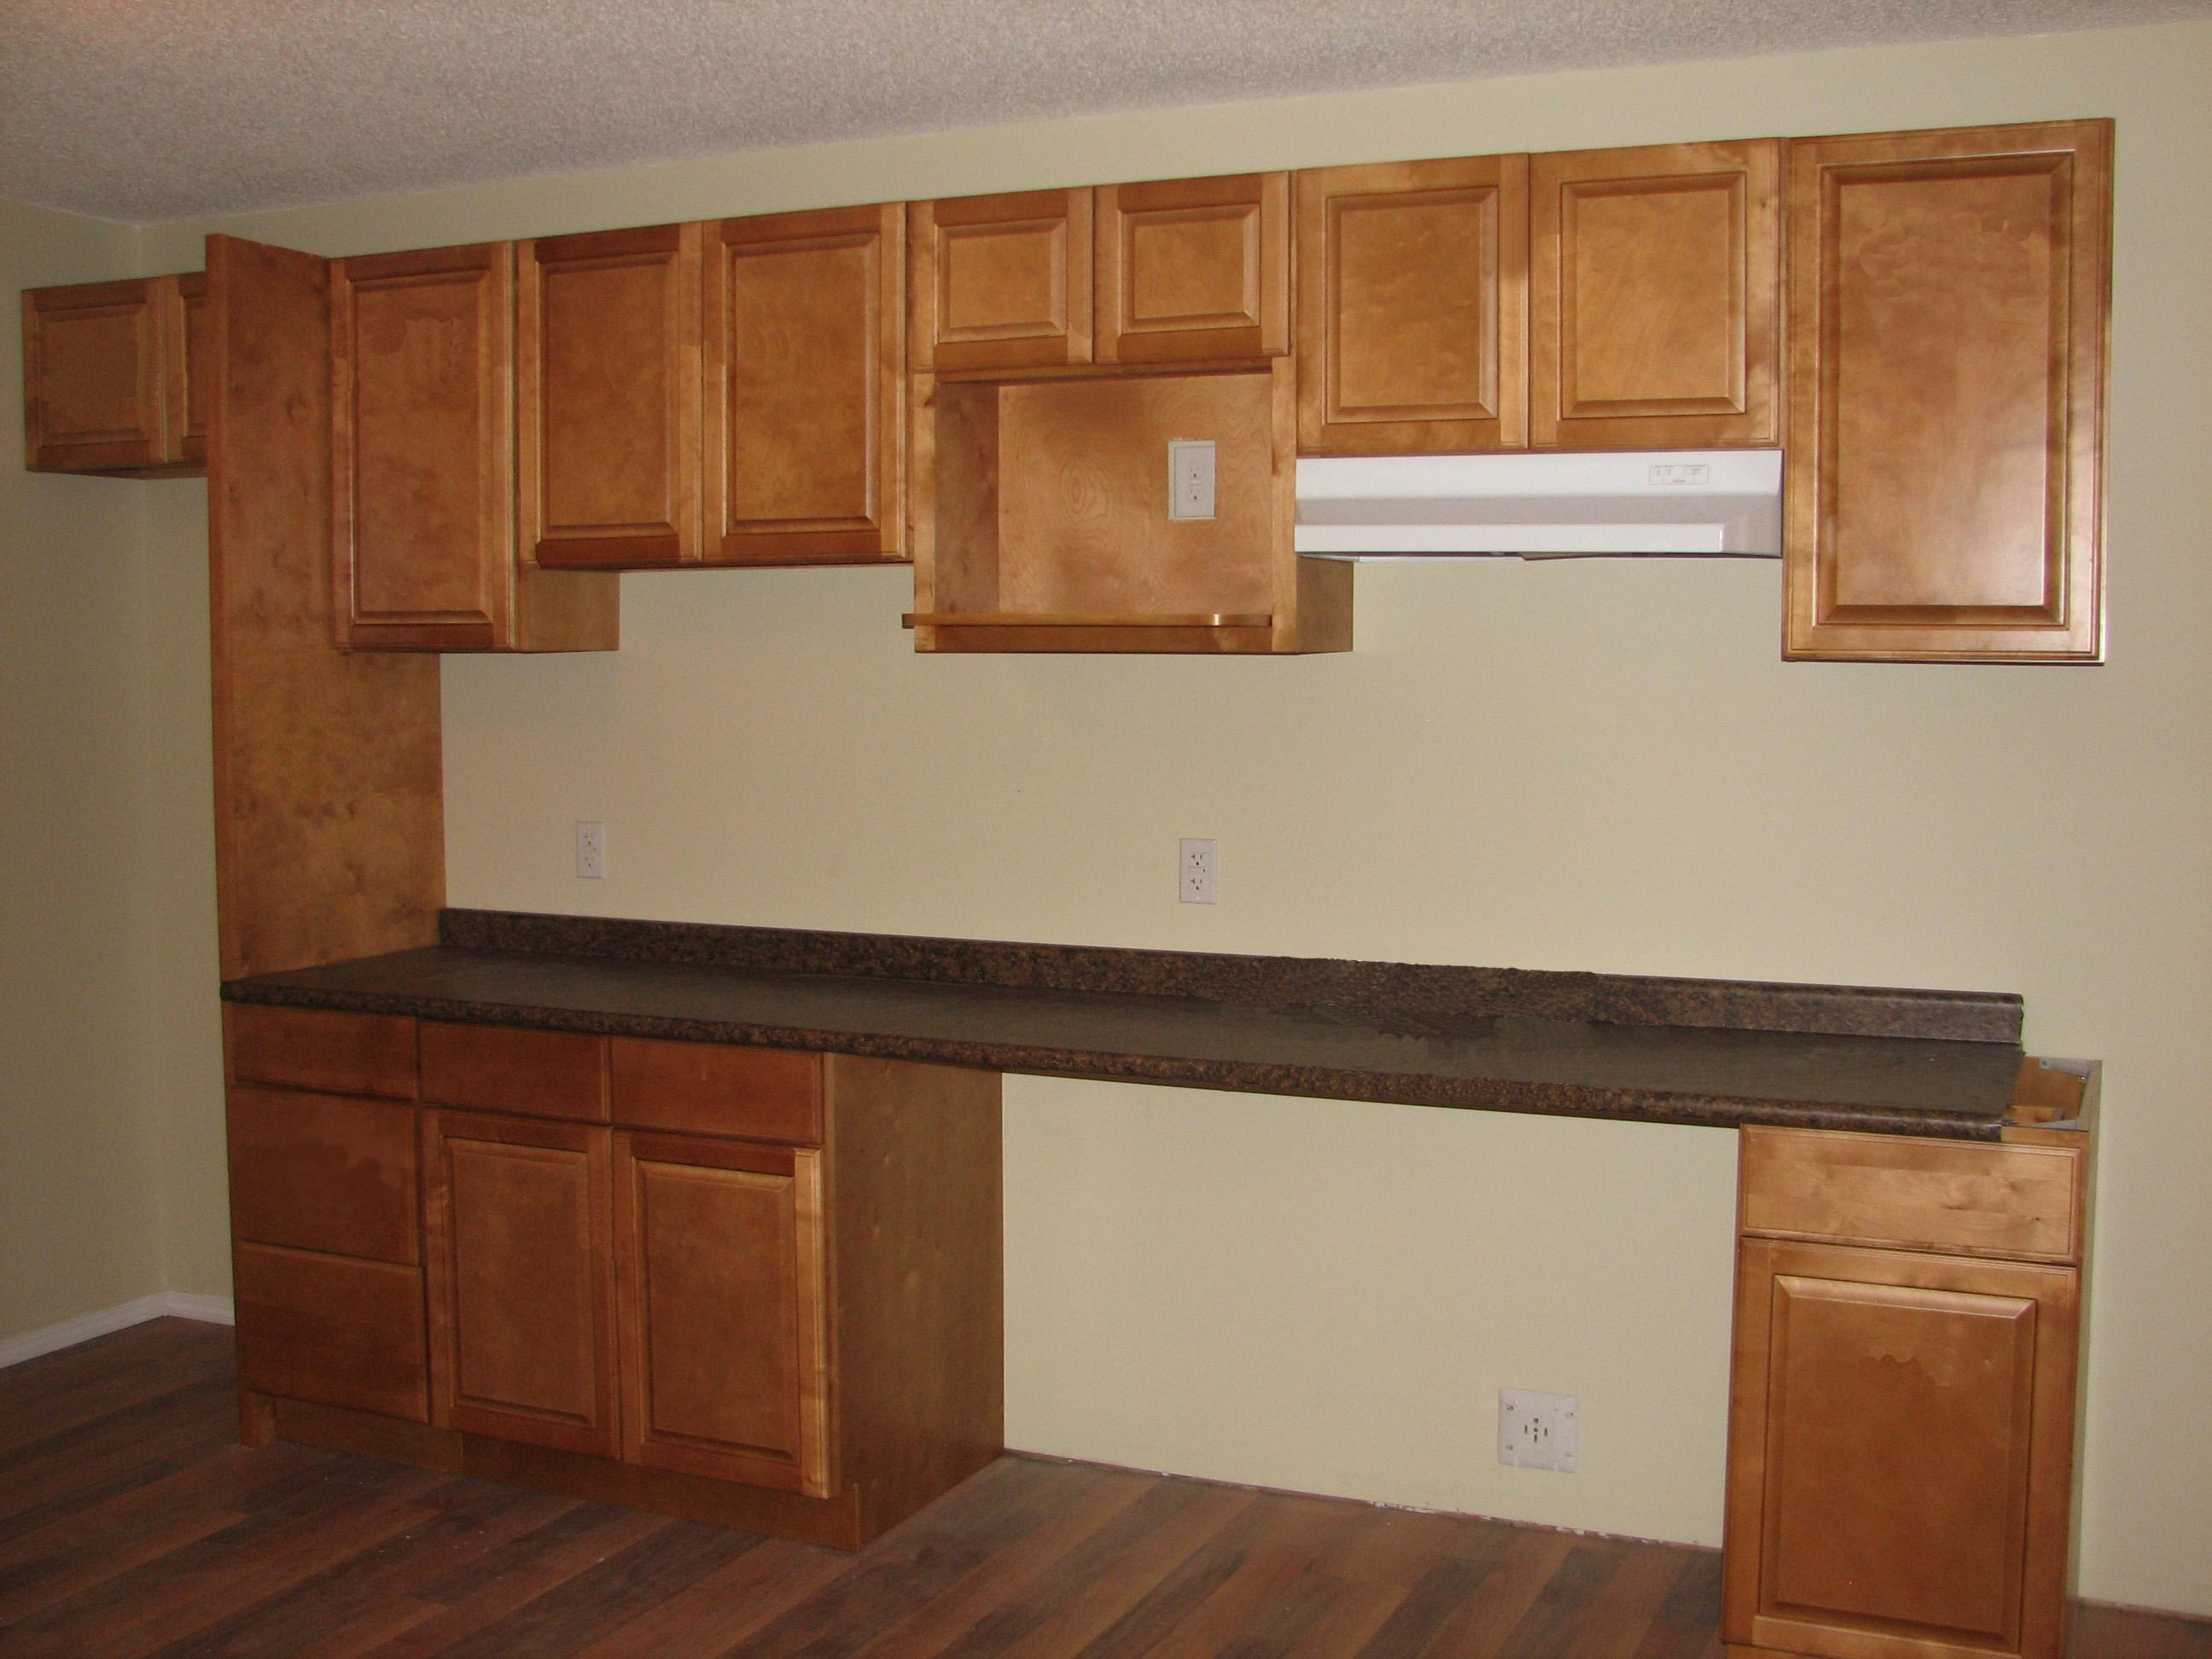 Kitchen Cabinets Traditional 1 0 1000 0 Pieces